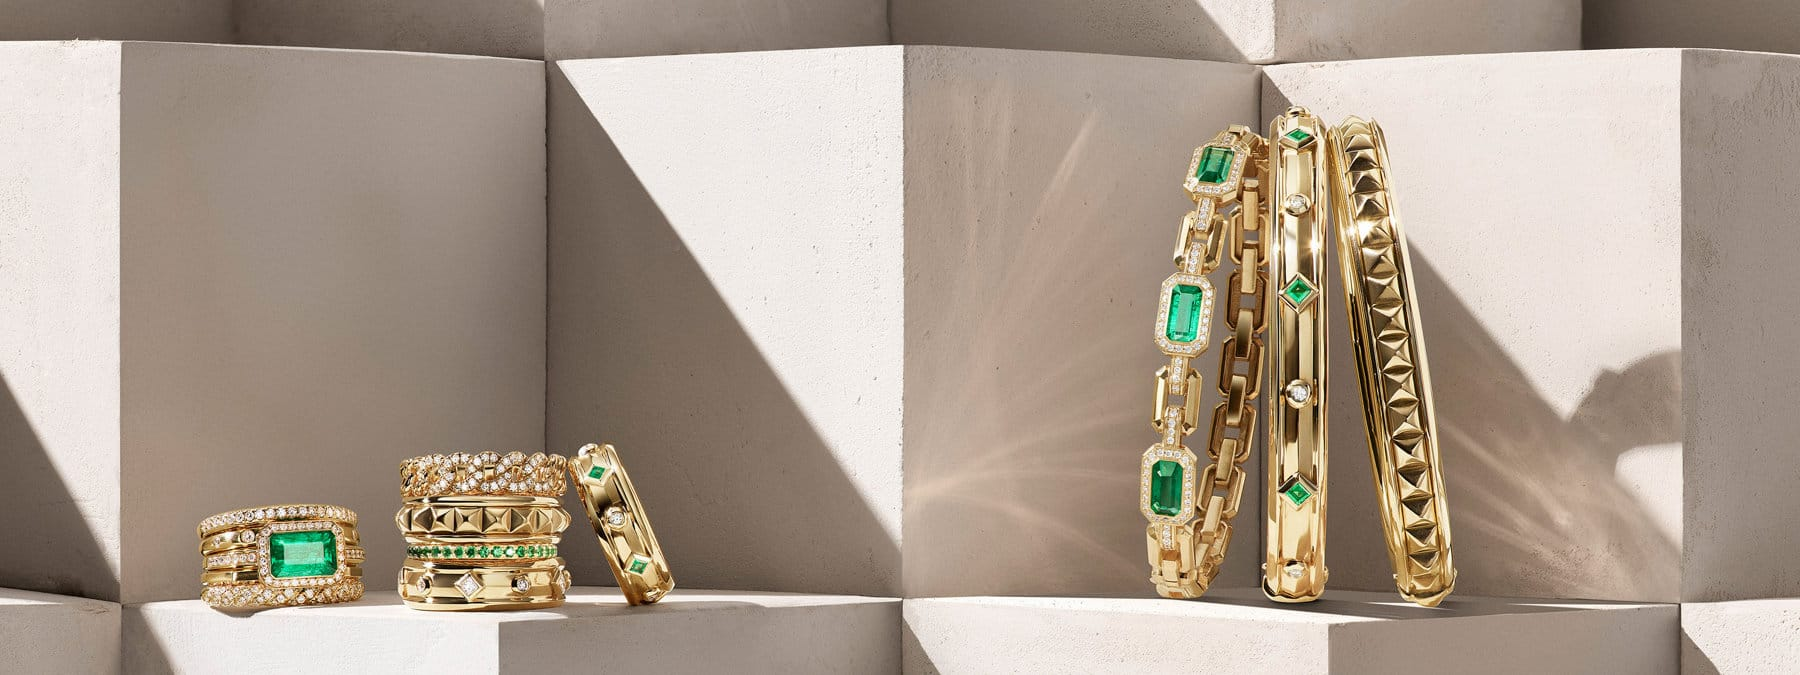 A color photo shows six David Yurman rings from the Stax, Belmont, Modern Renaissance and DY Eden collections on a stone shelf near a horizontal stack of David Yurman Novella and Modern Renaissance bracelets. The jewelry is crafted from 18K yellow gold with or without diamonds, emeralds and tsavorites. In the background are diagonal shadows and reflections of light.